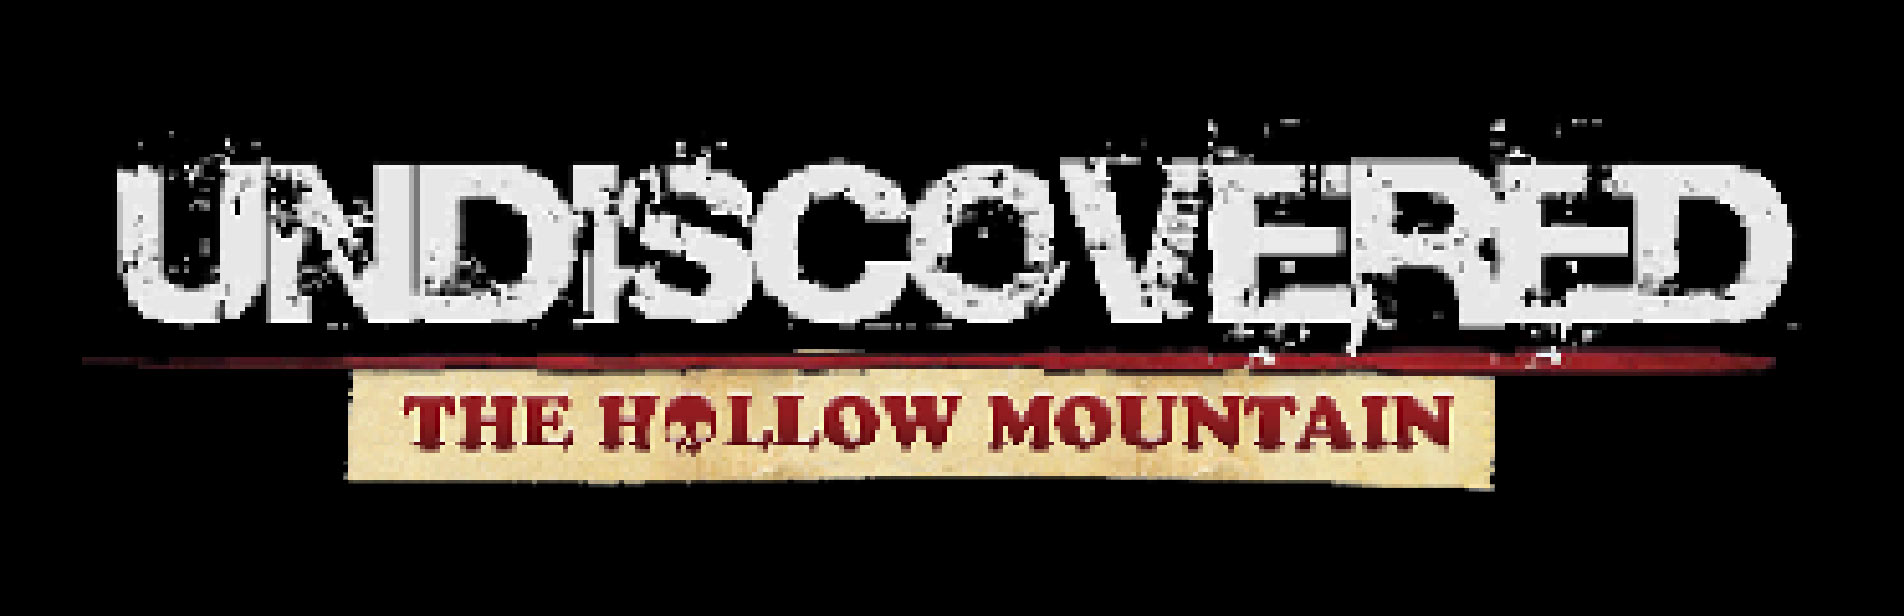 Undiscovered - The Hollow Mountain